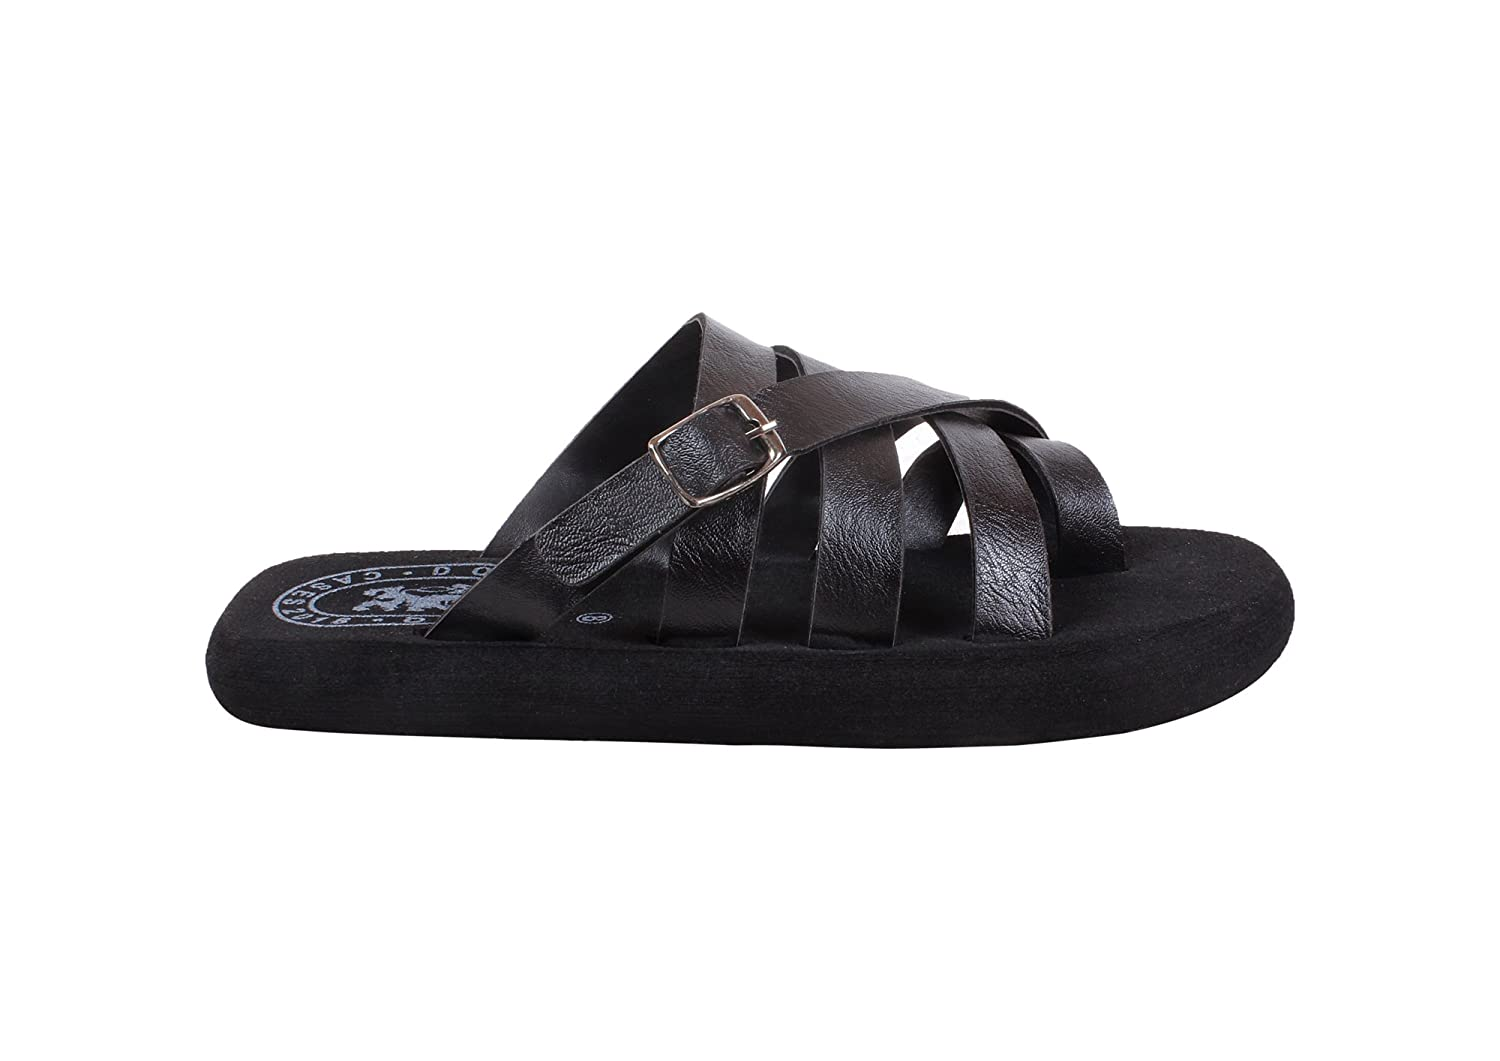 9495eef7da1ce DOMESTIQ Stylish Men s Black Color Flip-Flops and House Slippers Synthetic   Buy Online at Low Prices in India - Amazon.in